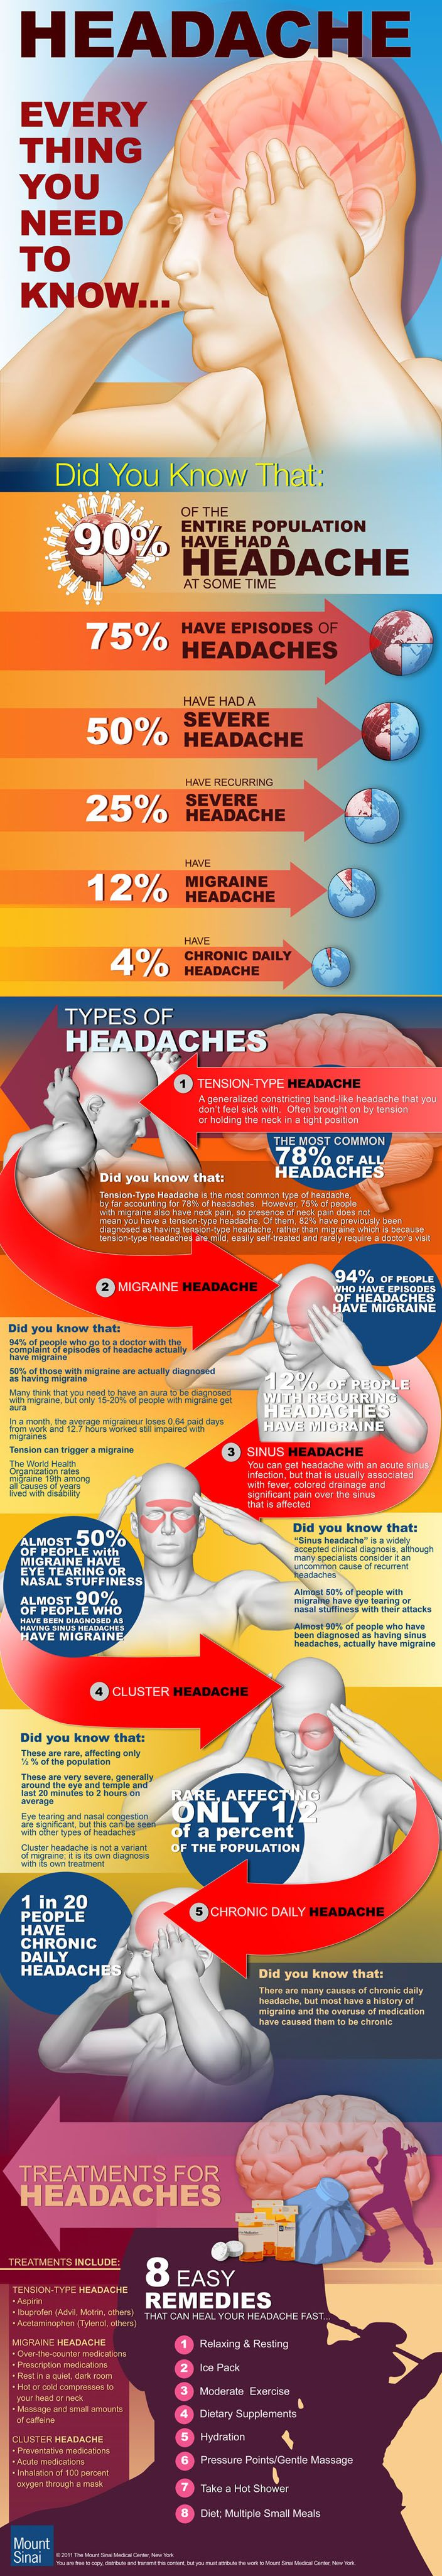 types of headaches and 8 easy natural remedies